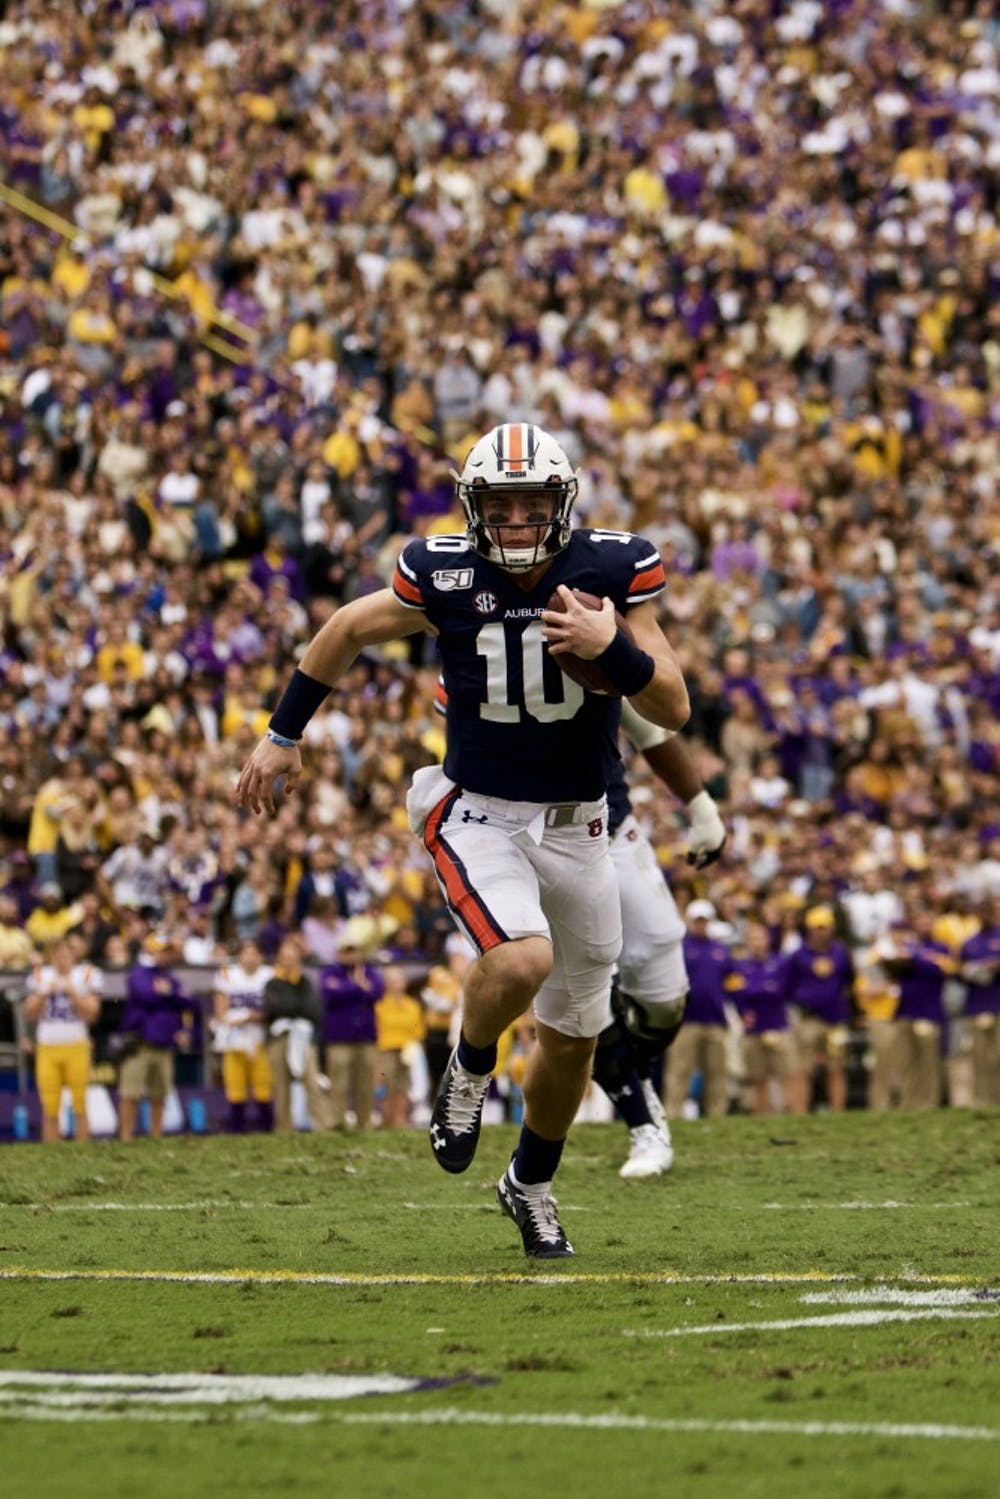 TV networks and game times announced for three of Auburn's games this season